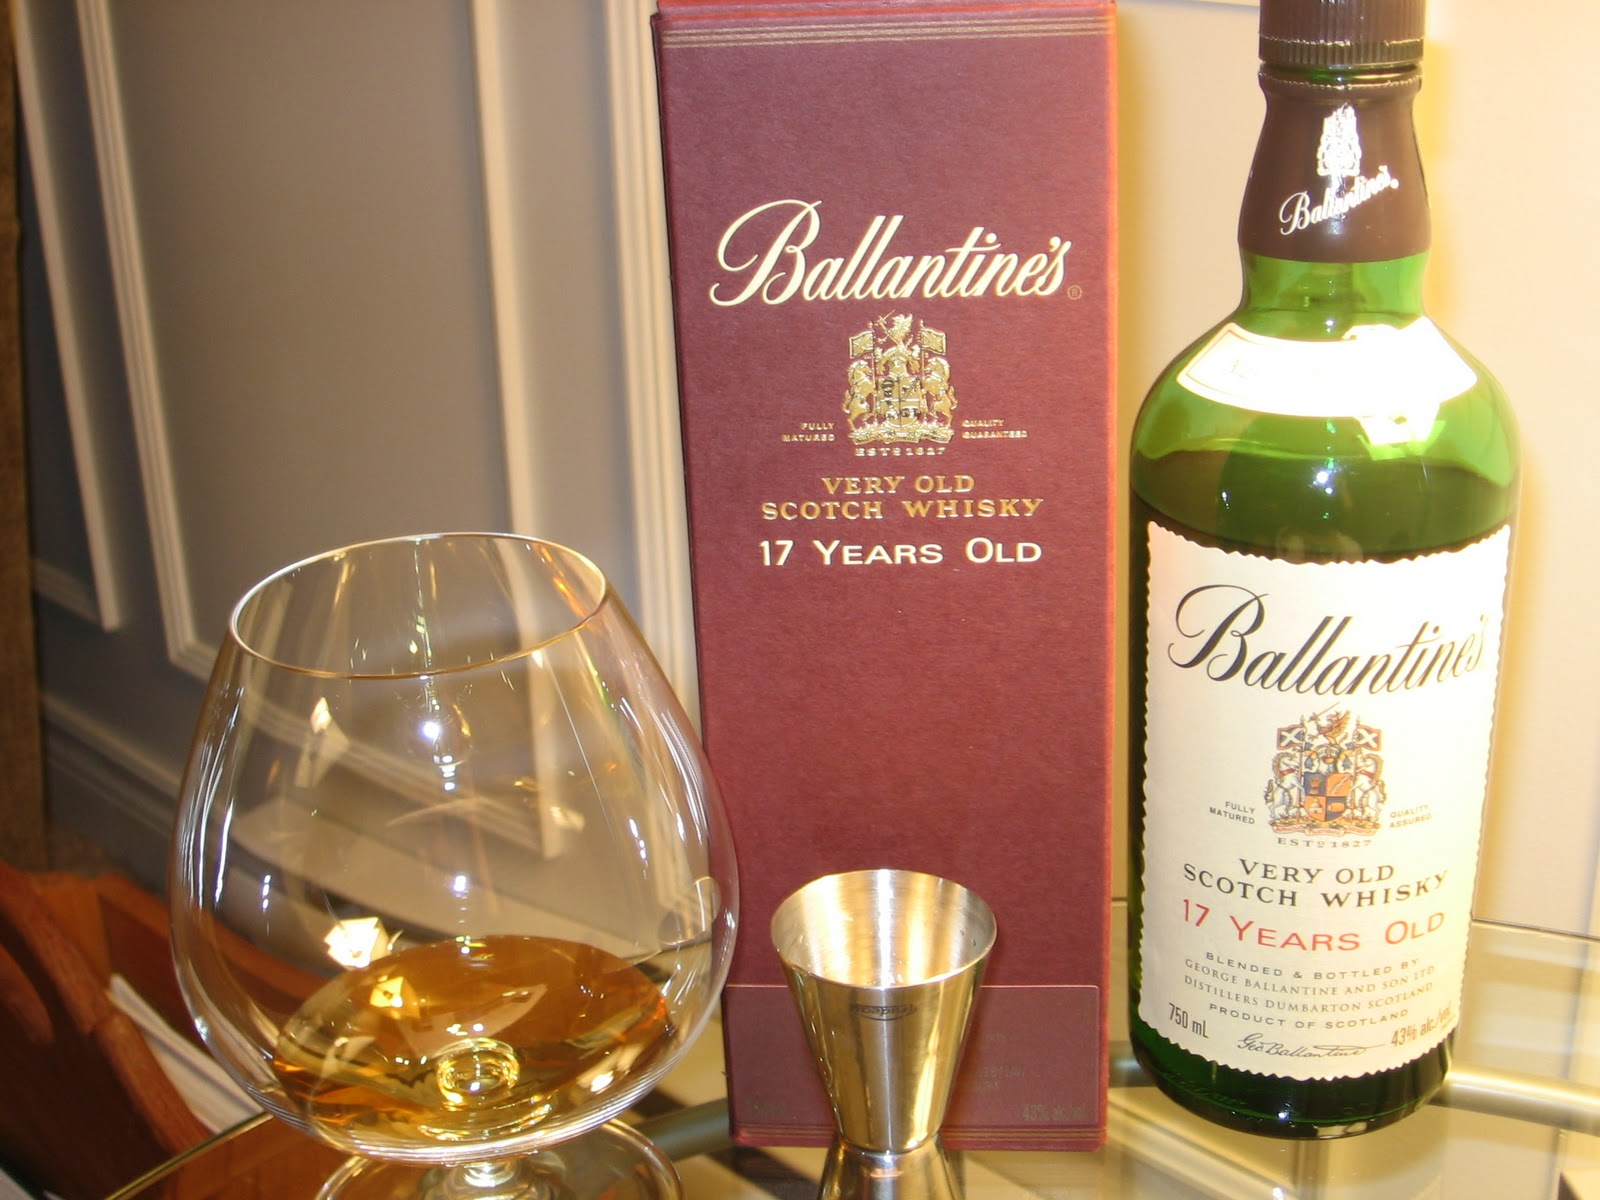 Review: Ballantineu0027s 17 Years Old Blended Scotch Whisky